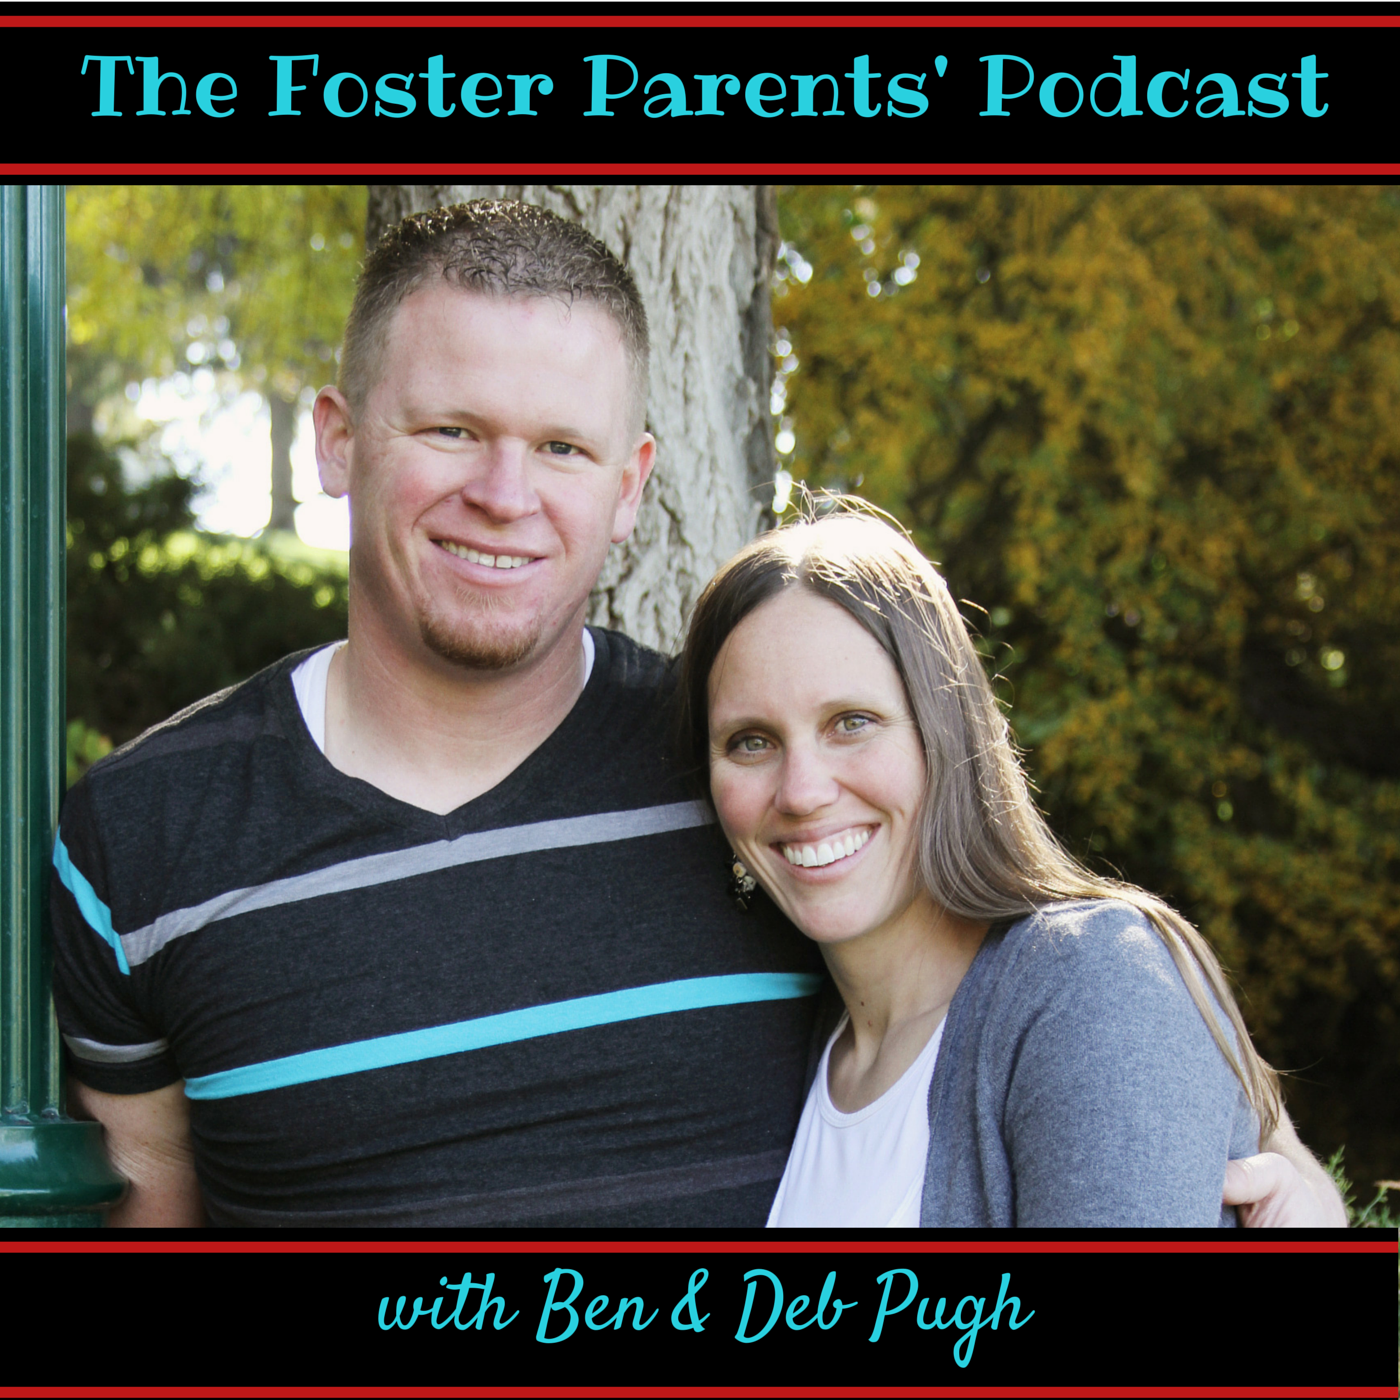 The Foster Parents' Podcast